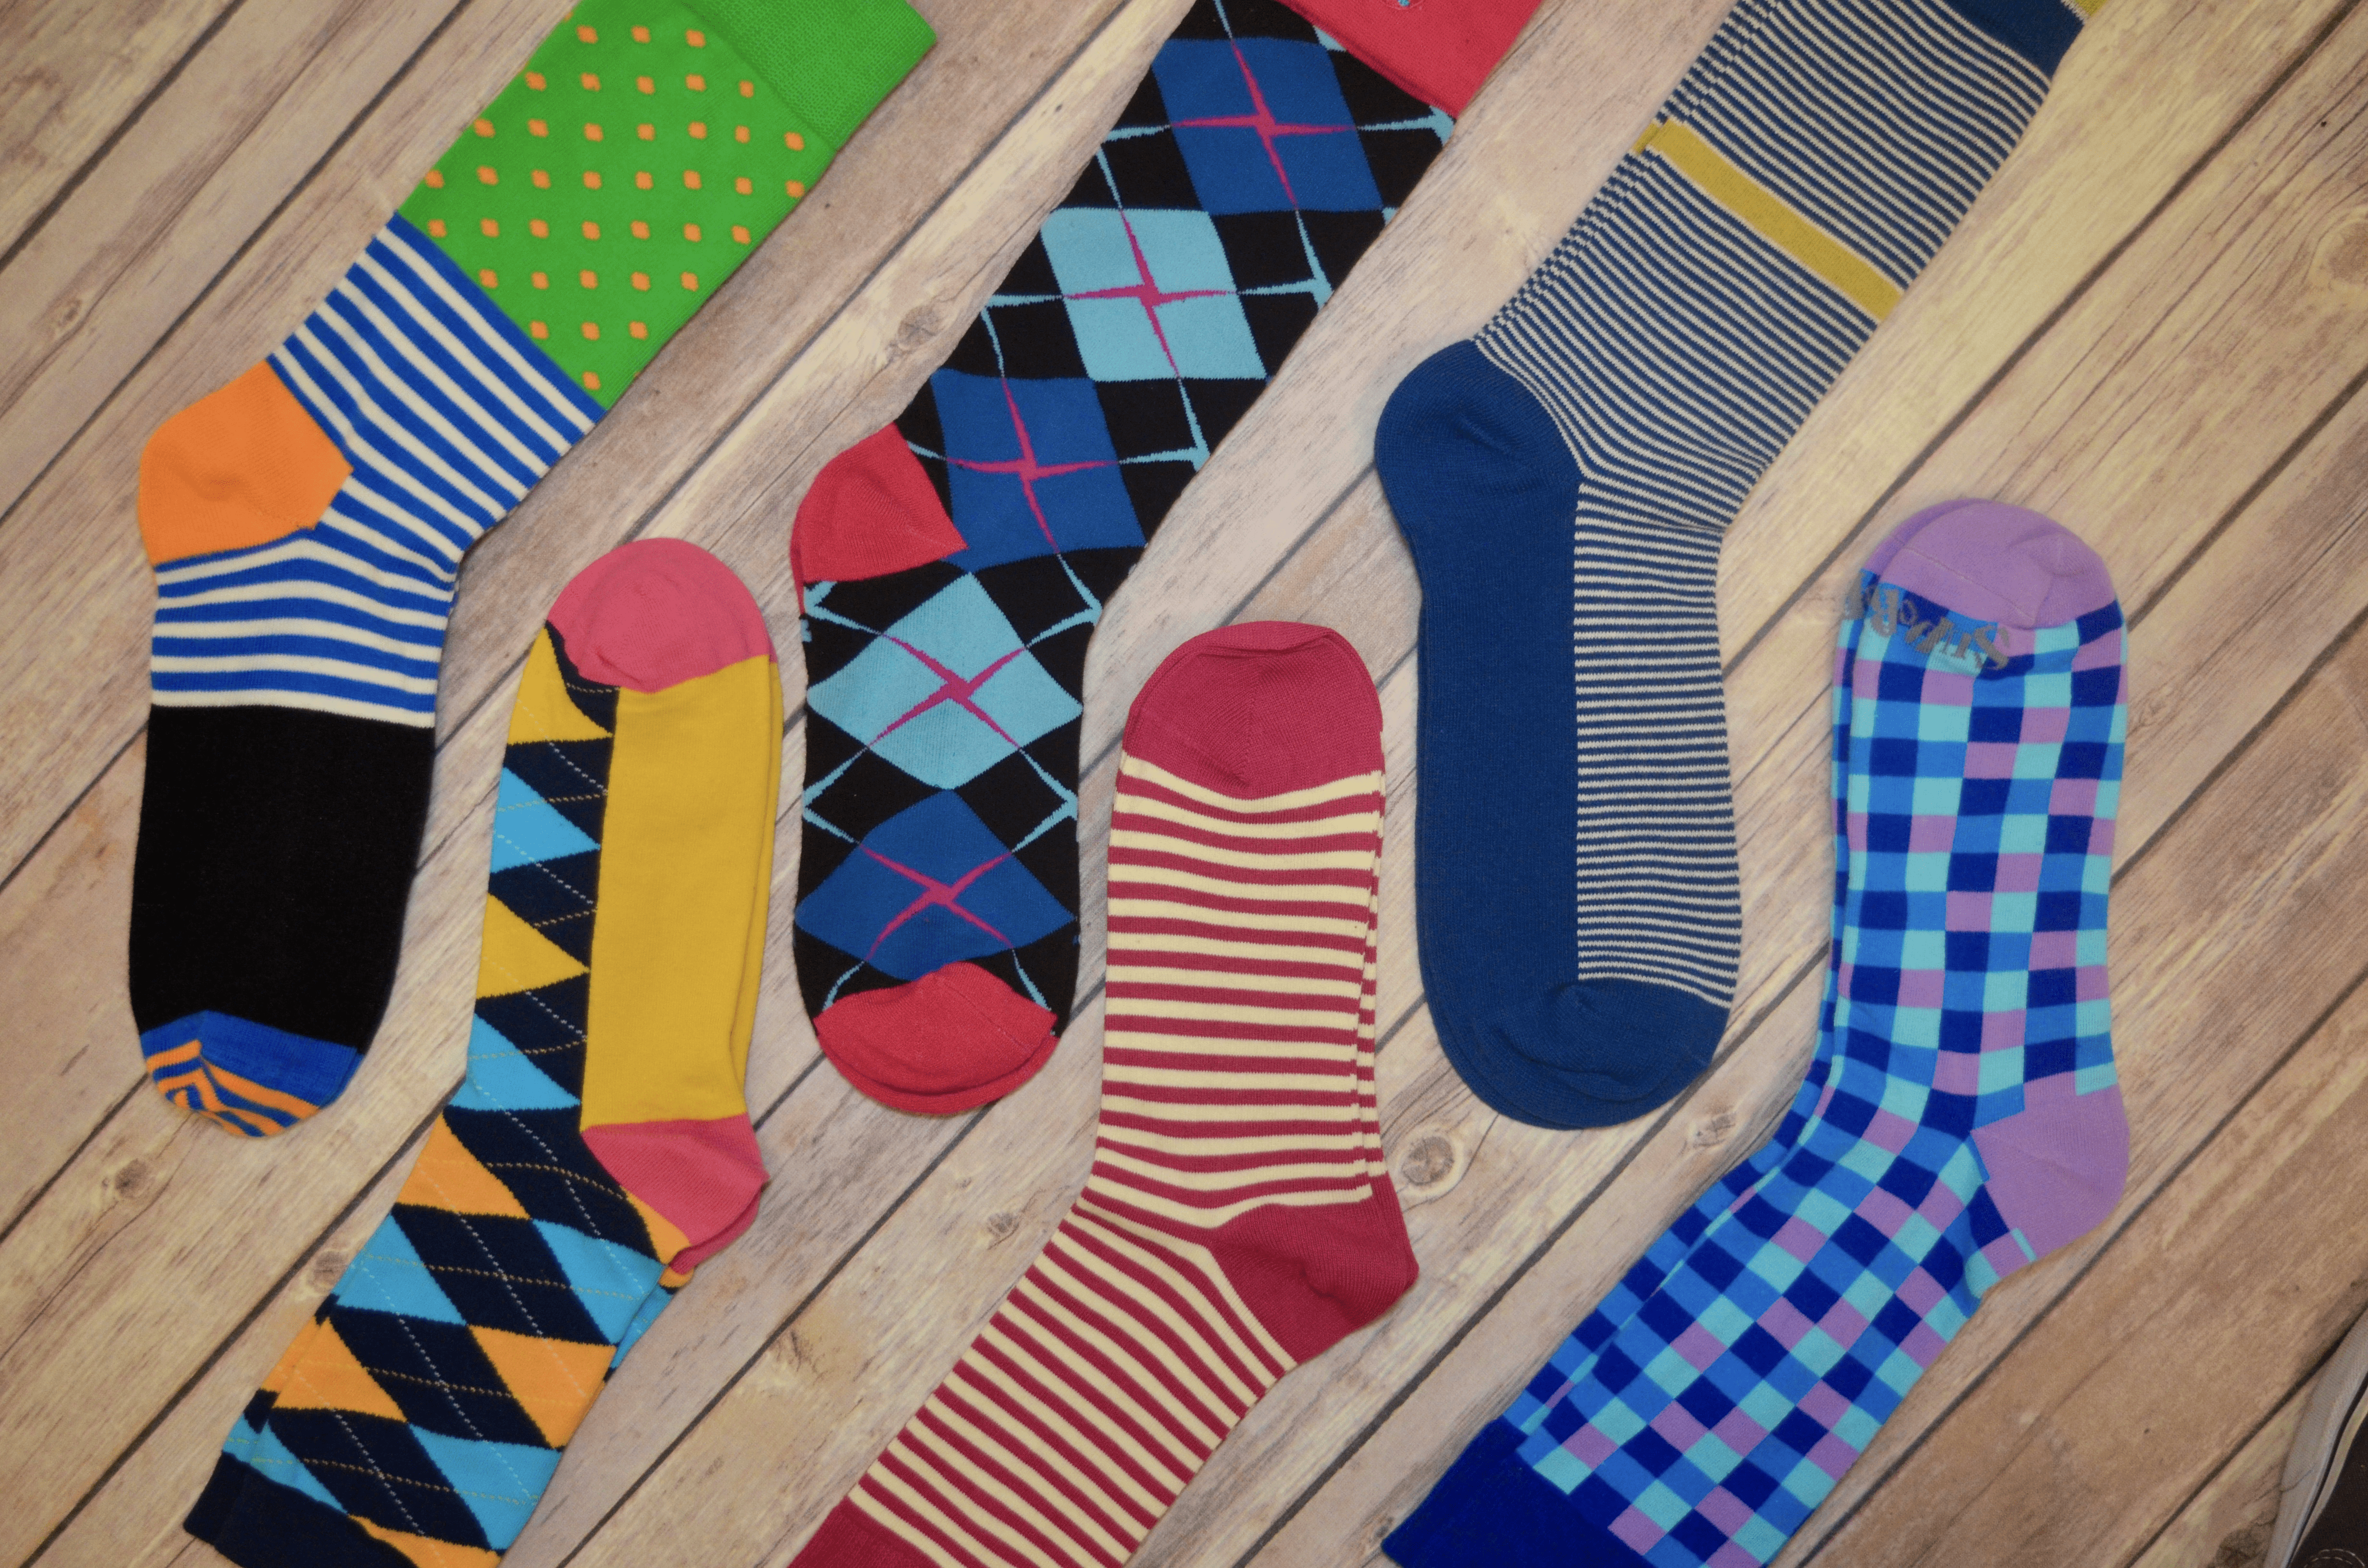 The Gentleman's Box Sock of the Month Black Friday Day Coupons! Save 40% First Month!